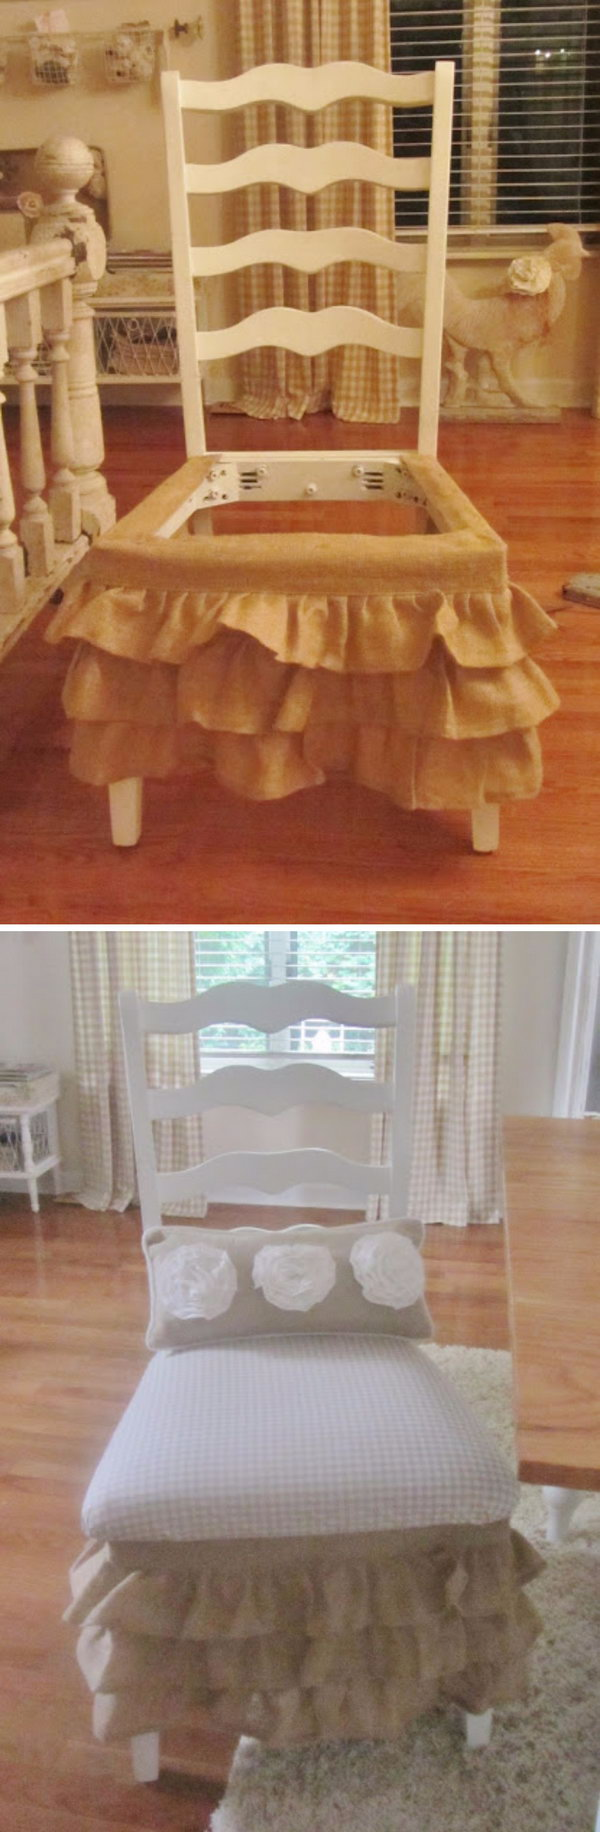 Ruffled Burlap Chair Skirt Made Out Of Valances.